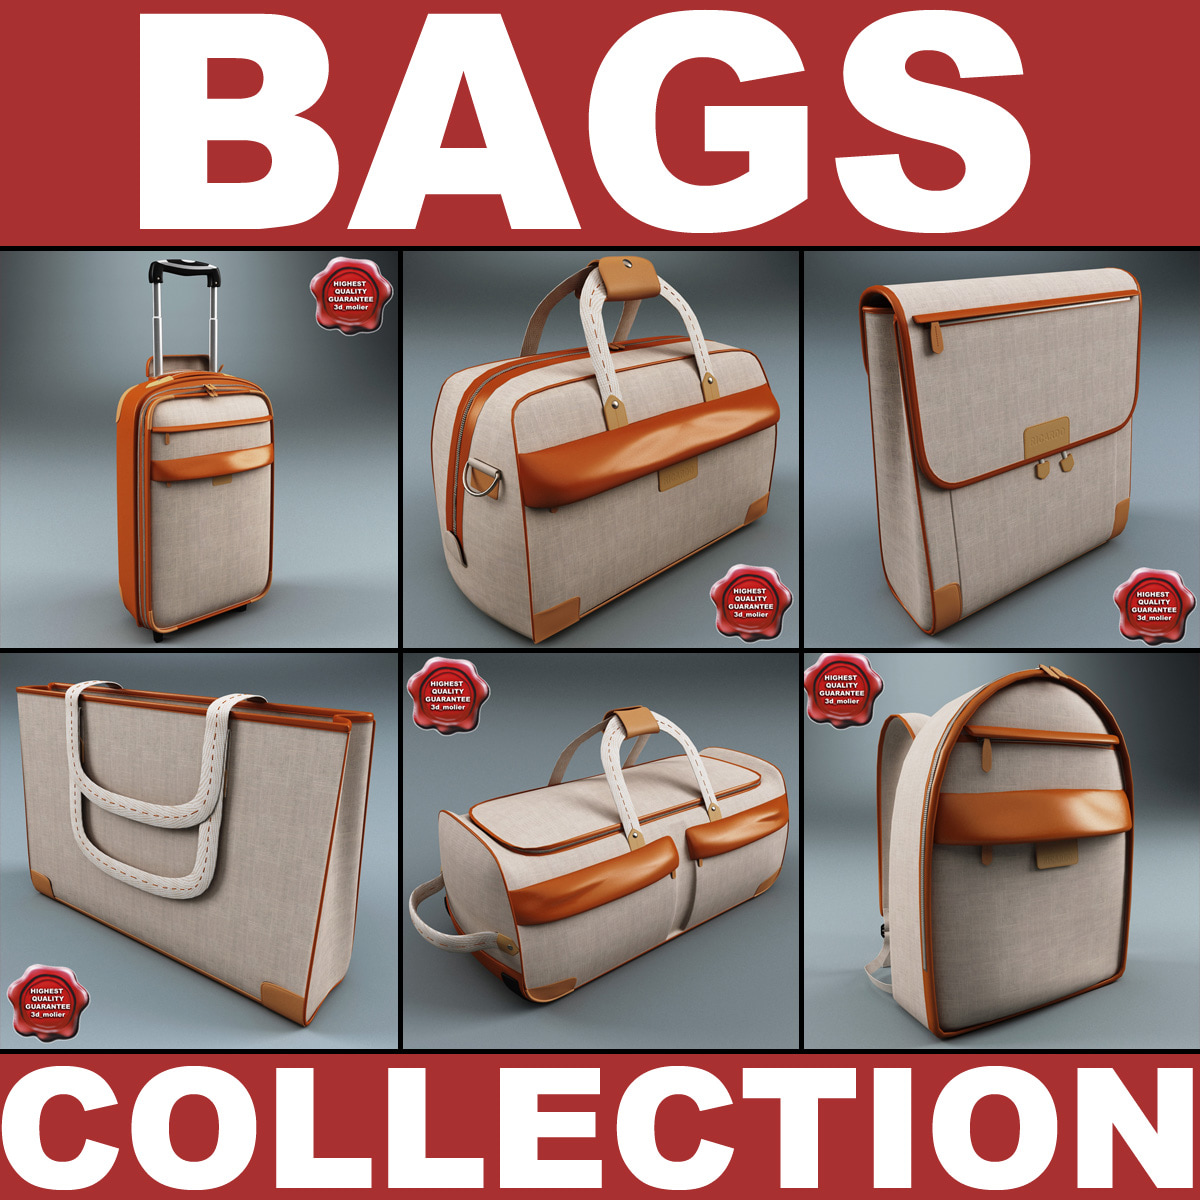 Bags_Collection_V1_00.jpg